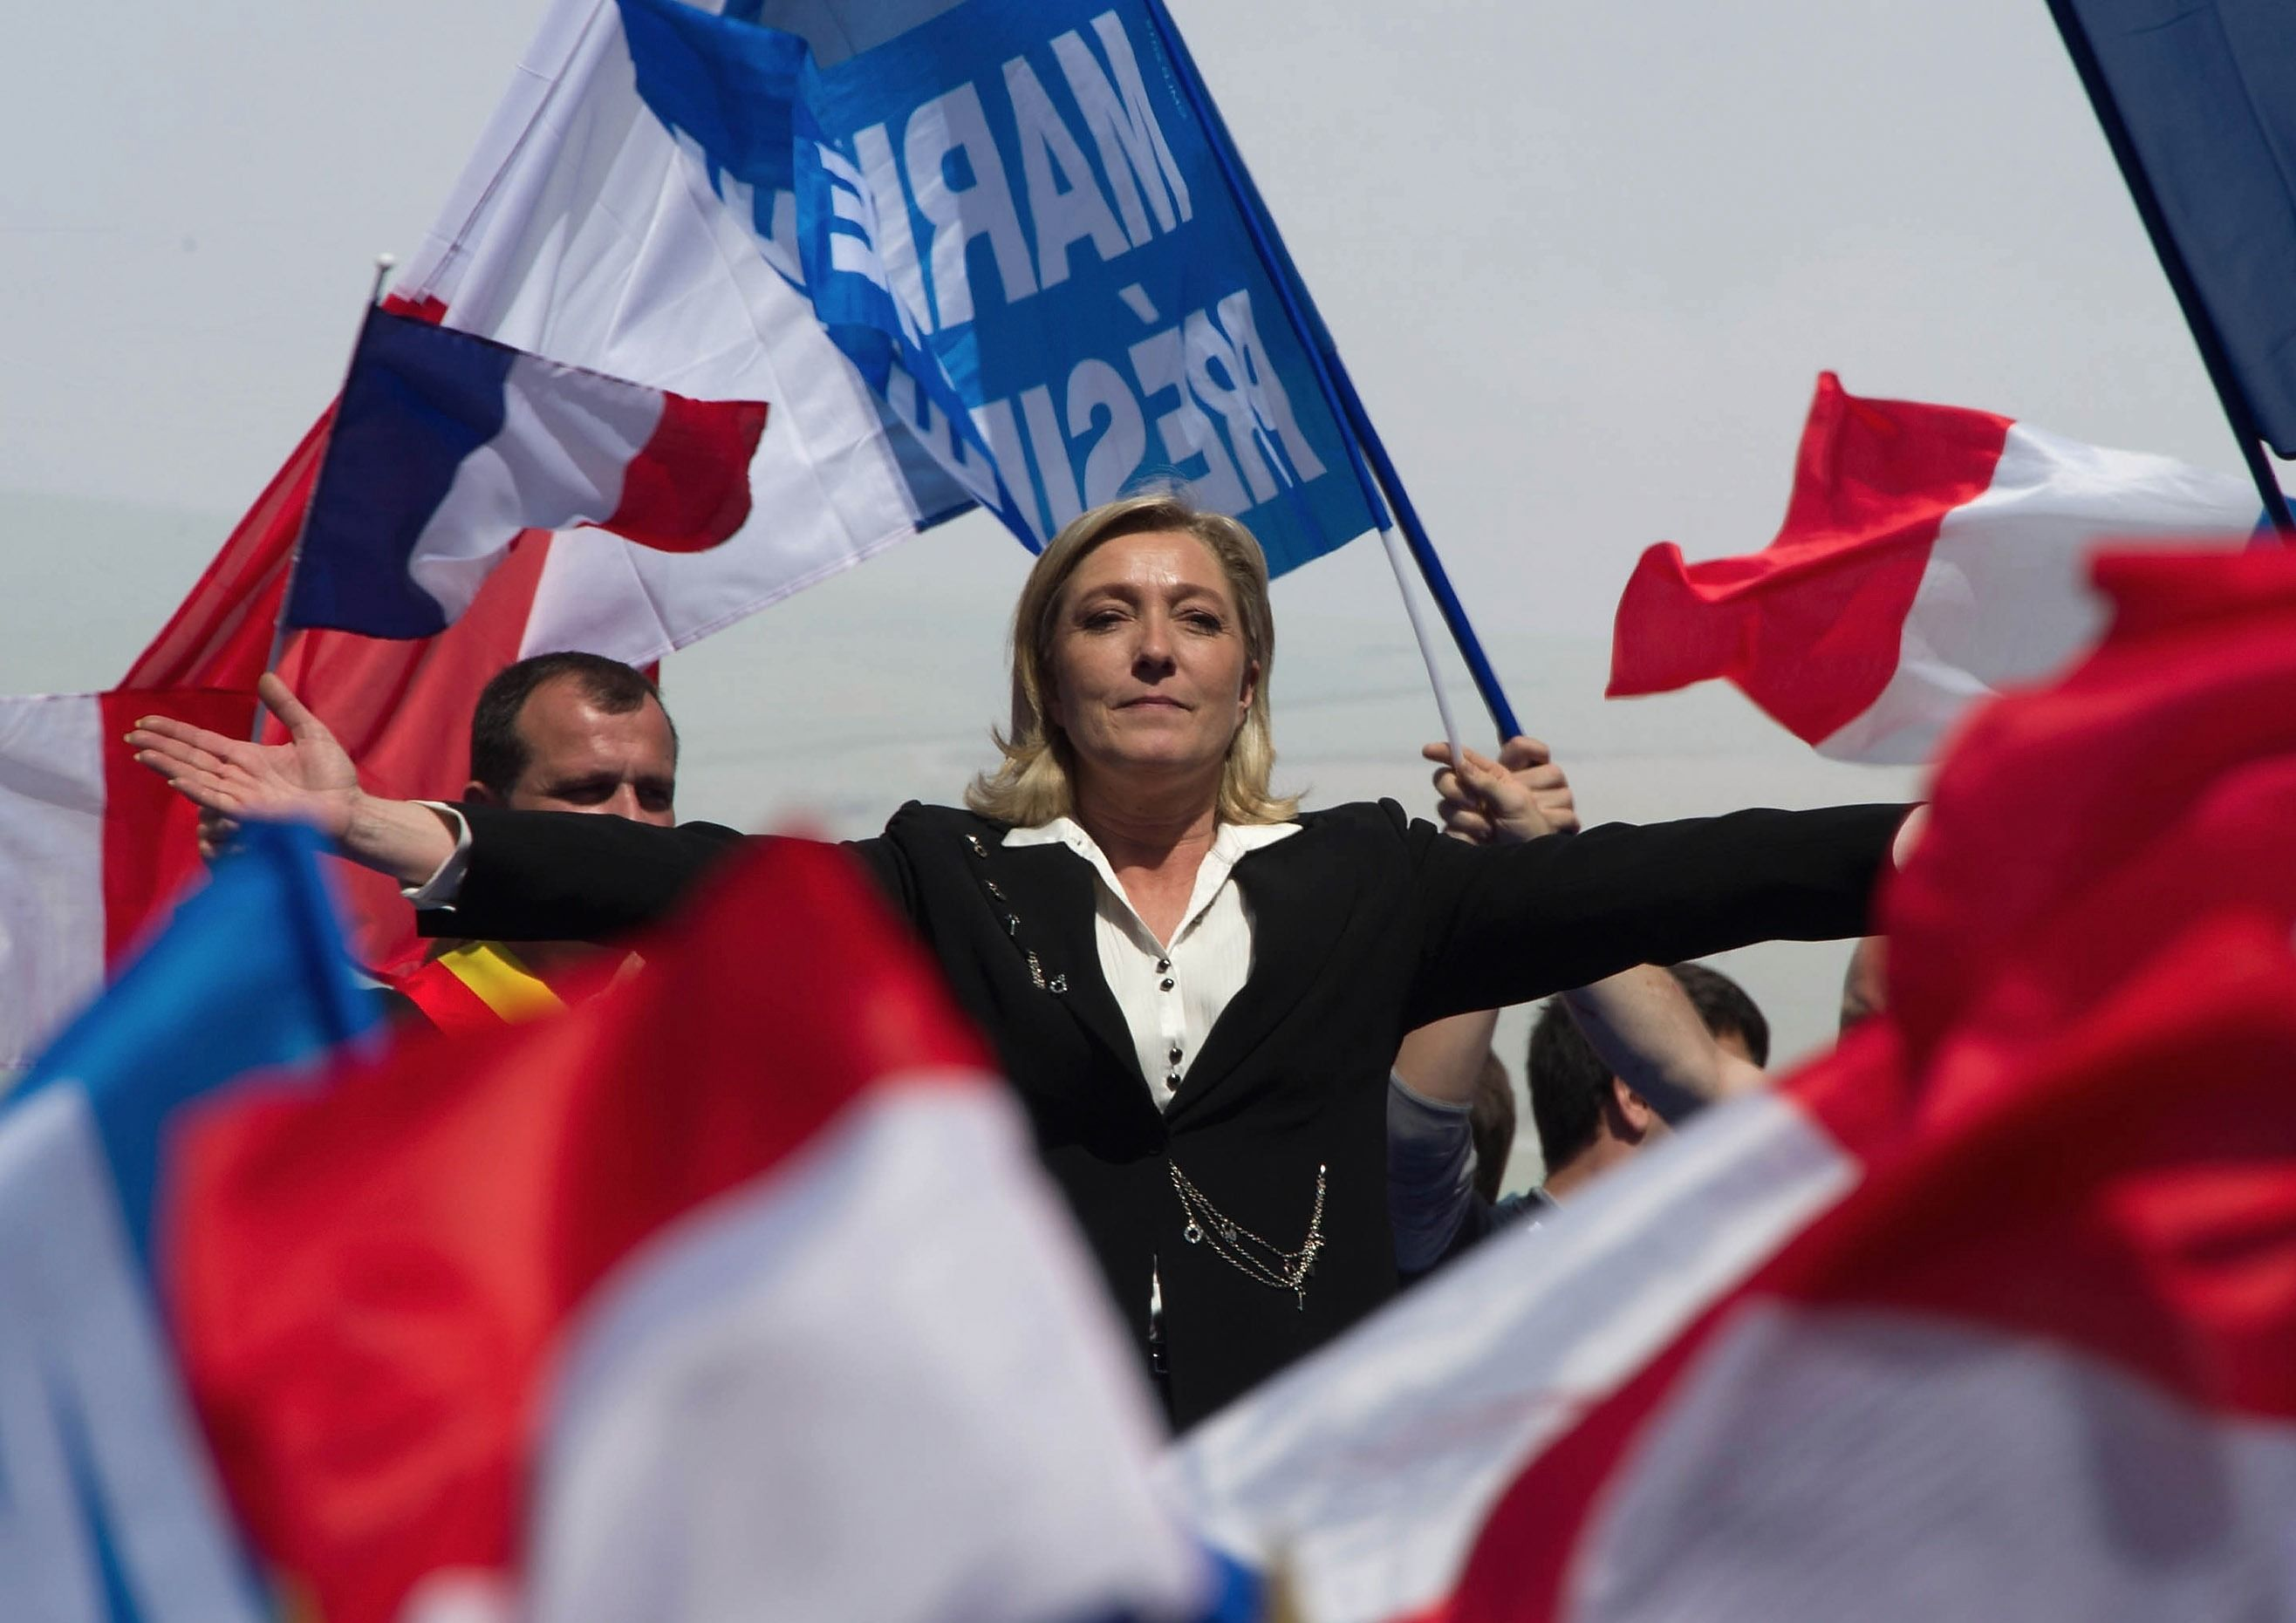 Marine Le Pen, of the French National Front party.